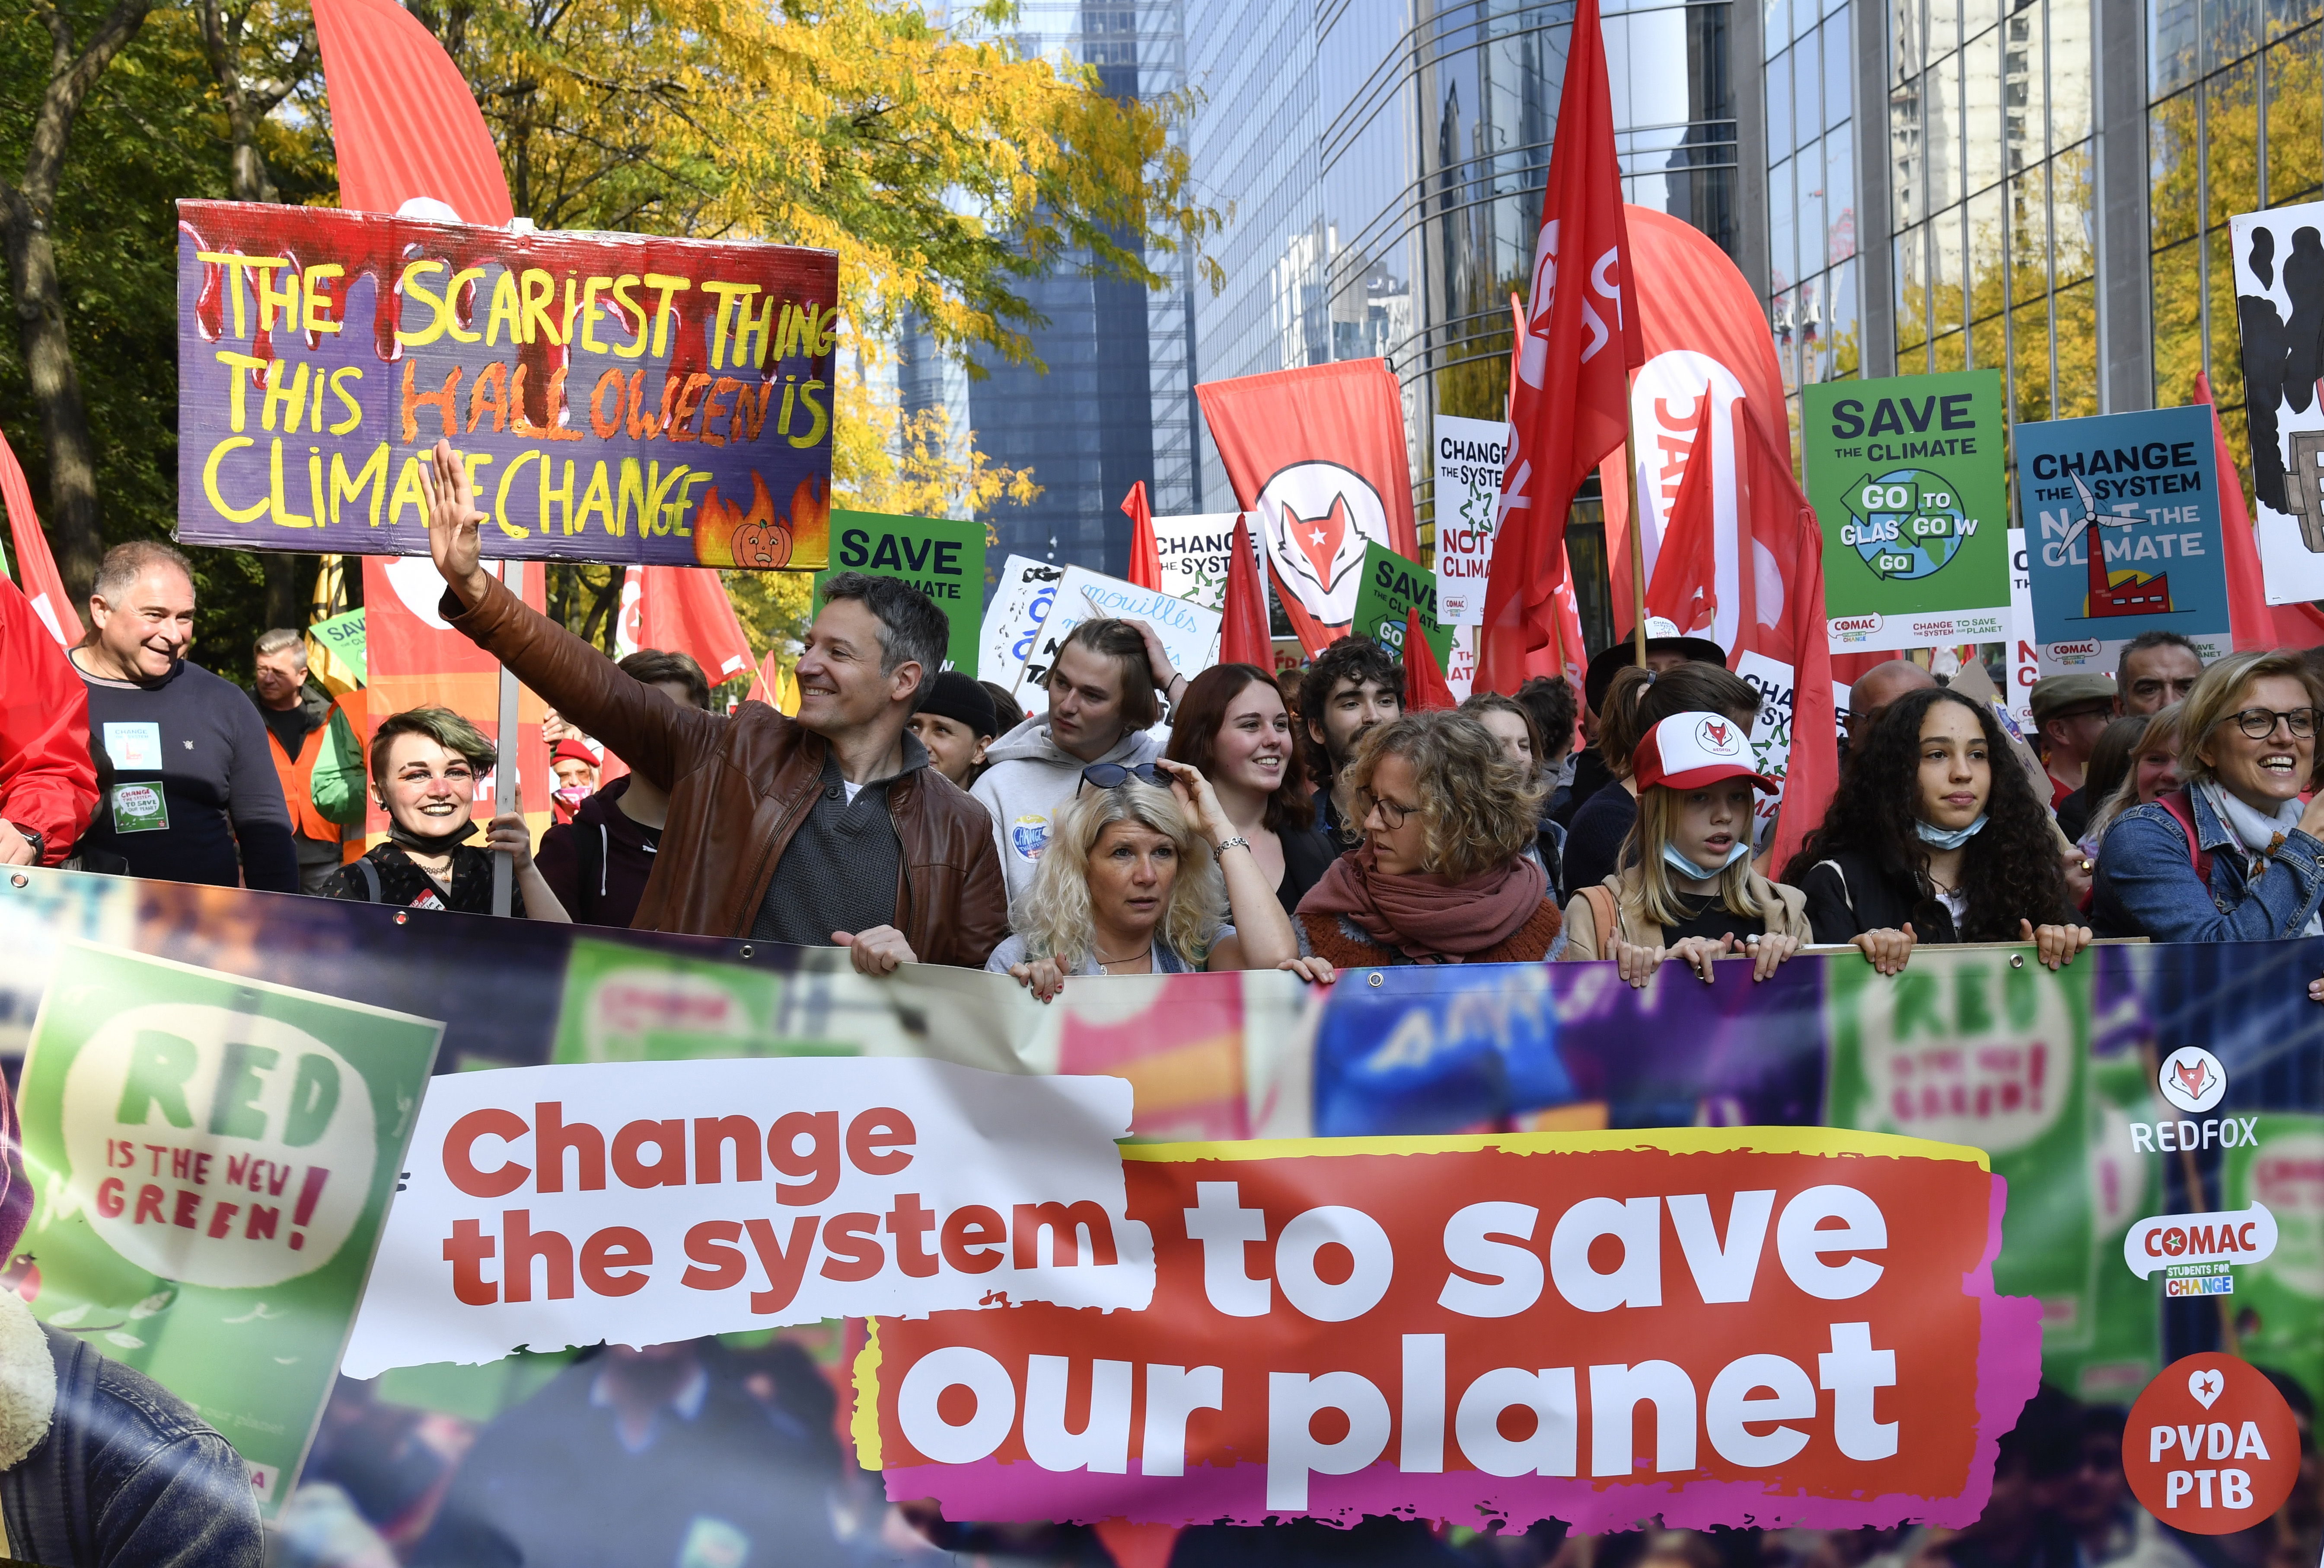 Protestors hold banners and signs as they participate in a climate march in Brussels, Belgium, on Oct. 10, 2021.